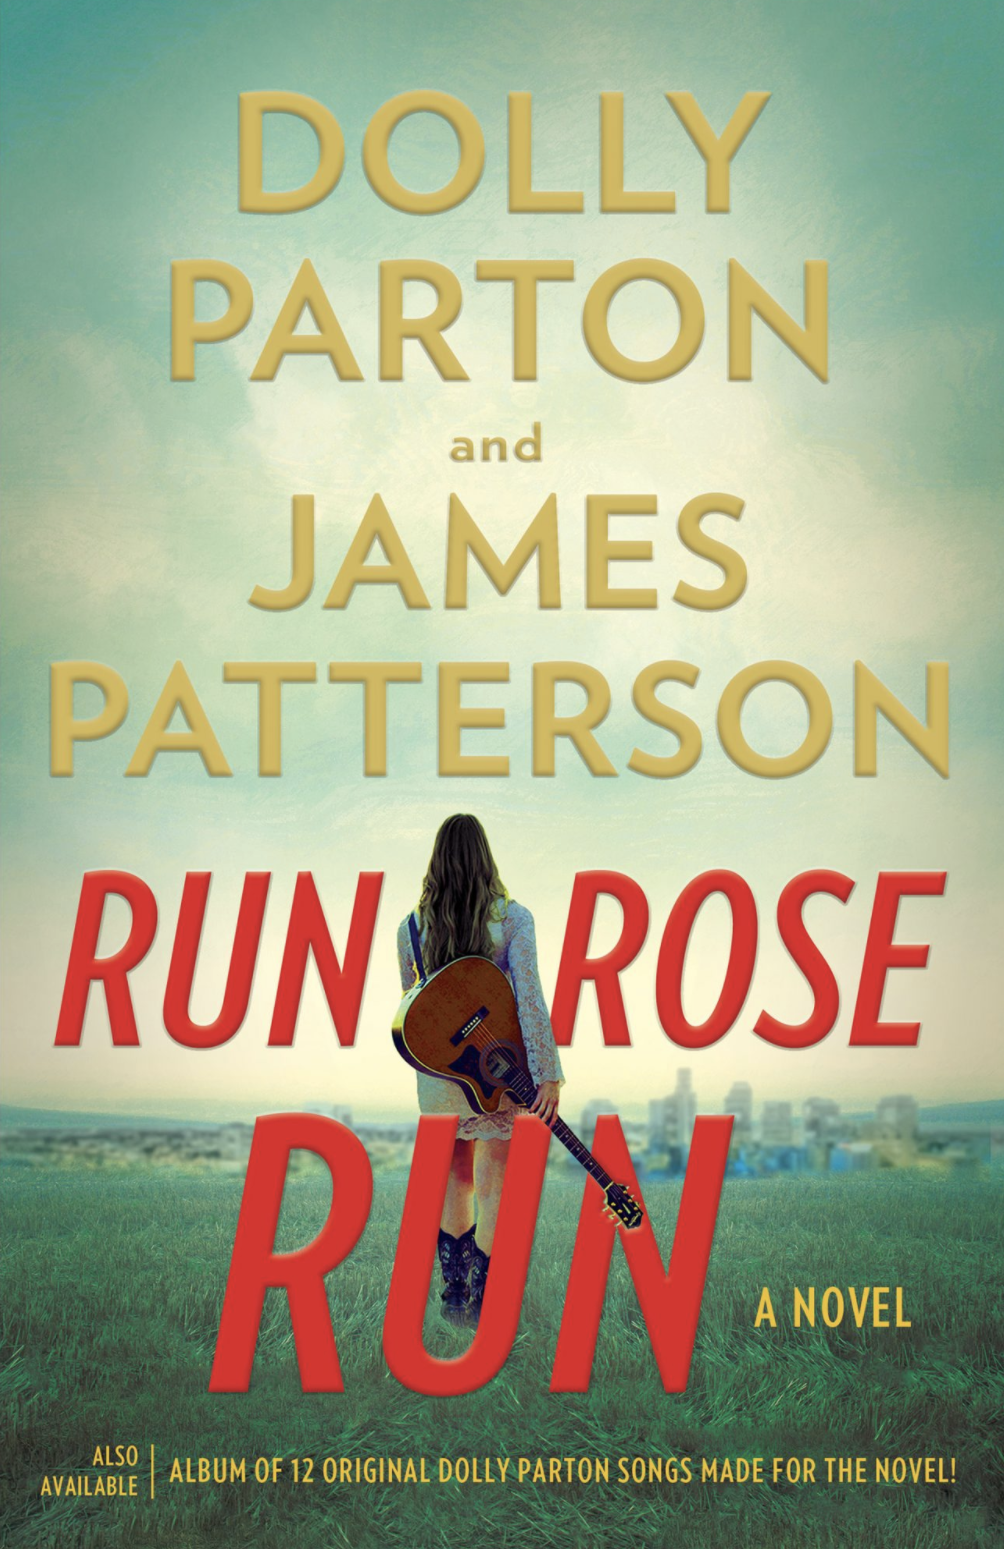 Image of the book cover for Run Rose Run